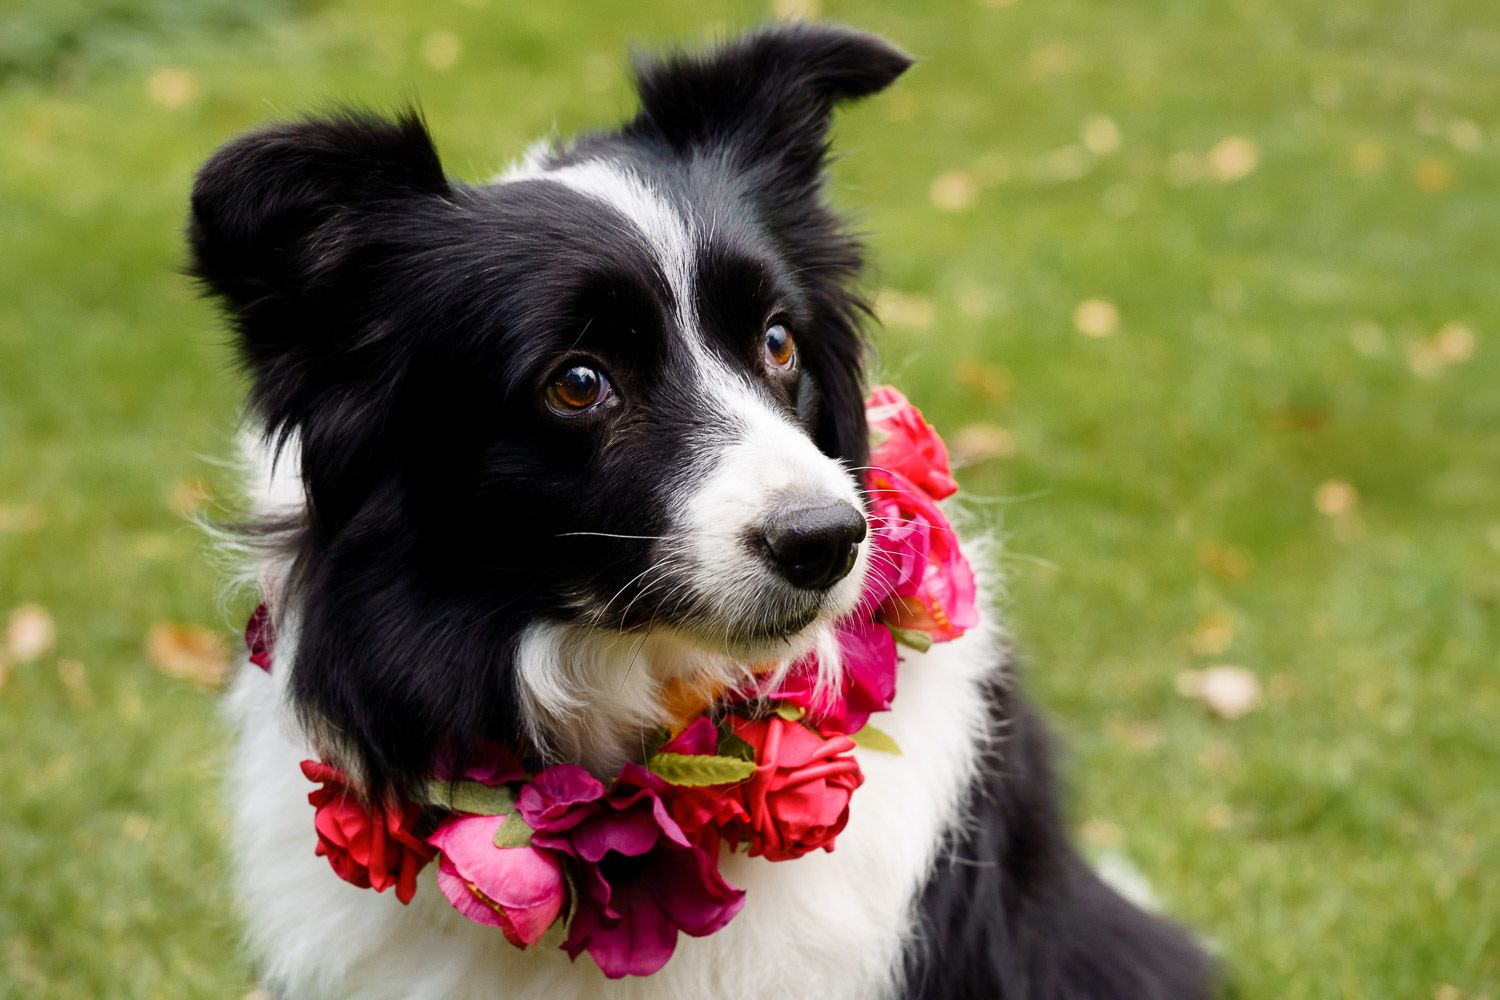 Border collie in a flower collar - dogs at weddings. Top 10 dog-friendly wedding tips.